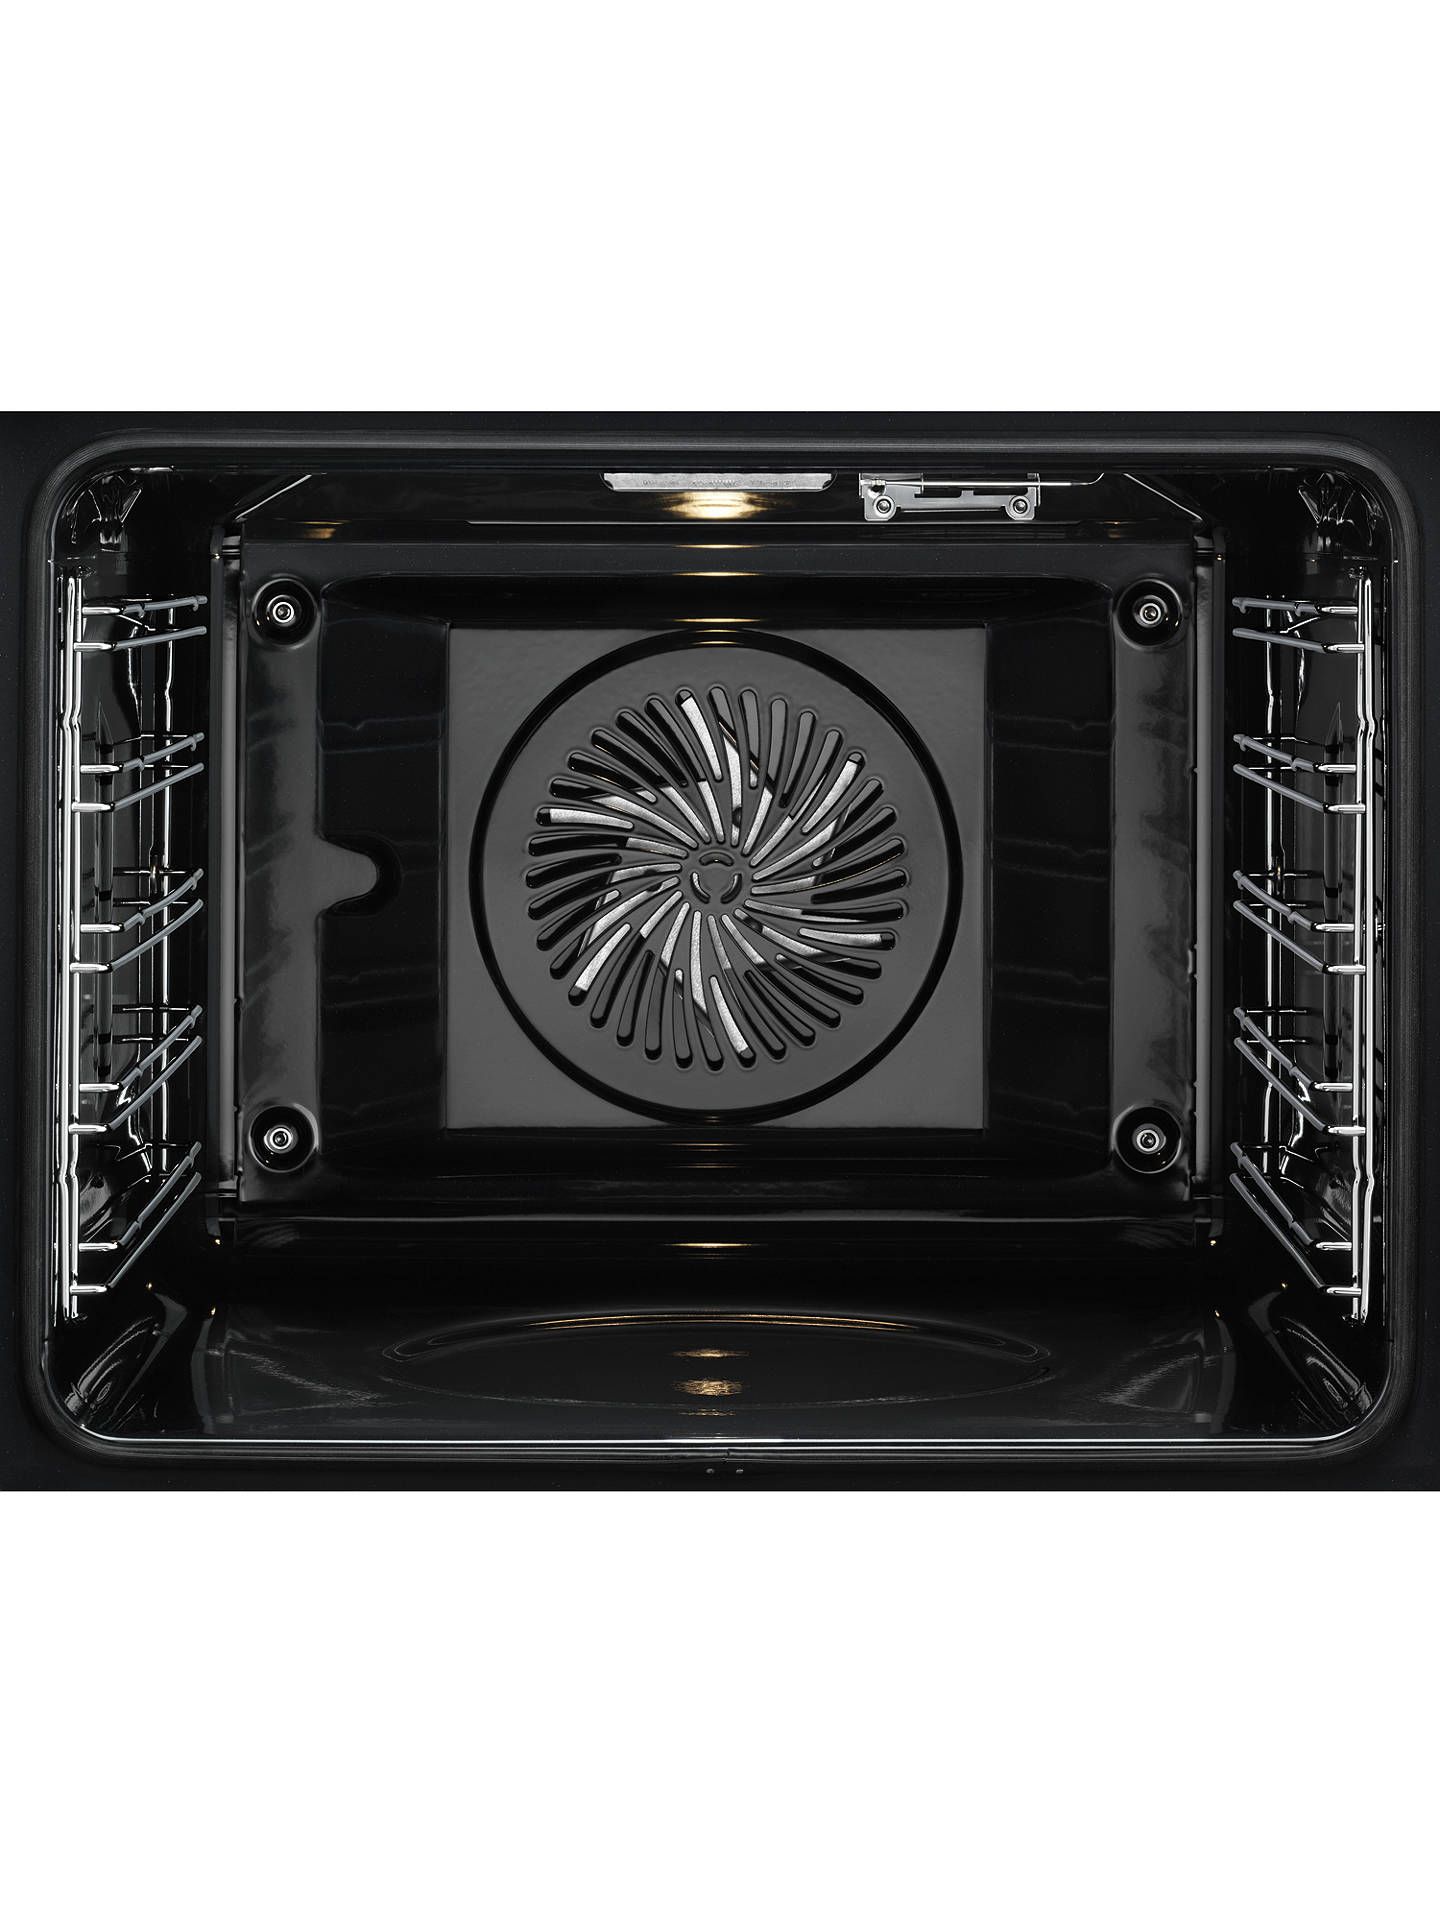 BuyAEG BPS551020M Built-In Multifunction Oven, Stainless Steel Online at johnlewis.com